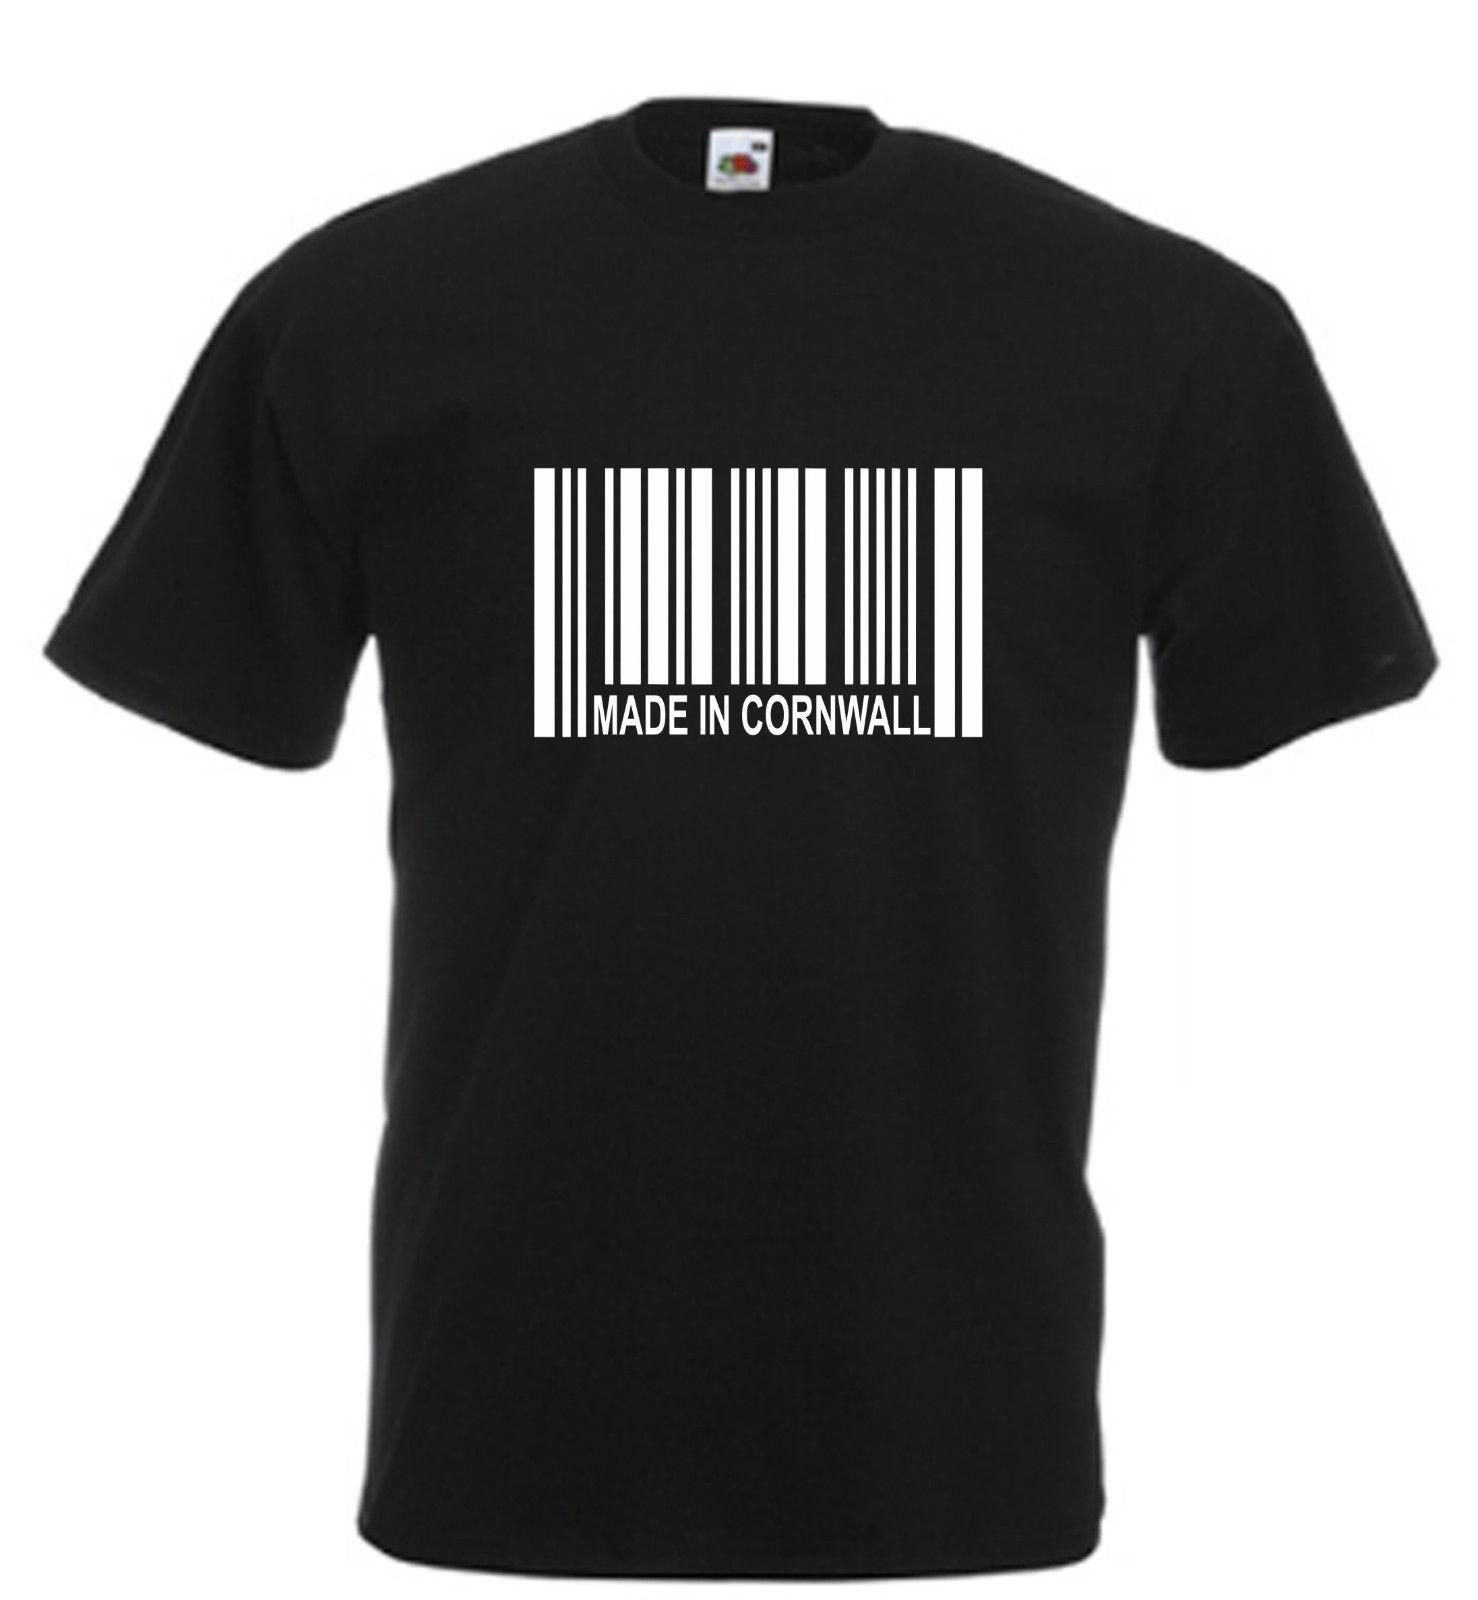 377993eb2b Made In Cornwall Barcode Novelty T Shirt Cornish Birthday Xmas Gift All  SizesFunny Unisex Casual Tshirt Cotton T Shirt Create T Shirts From  Walkerfranck, ...